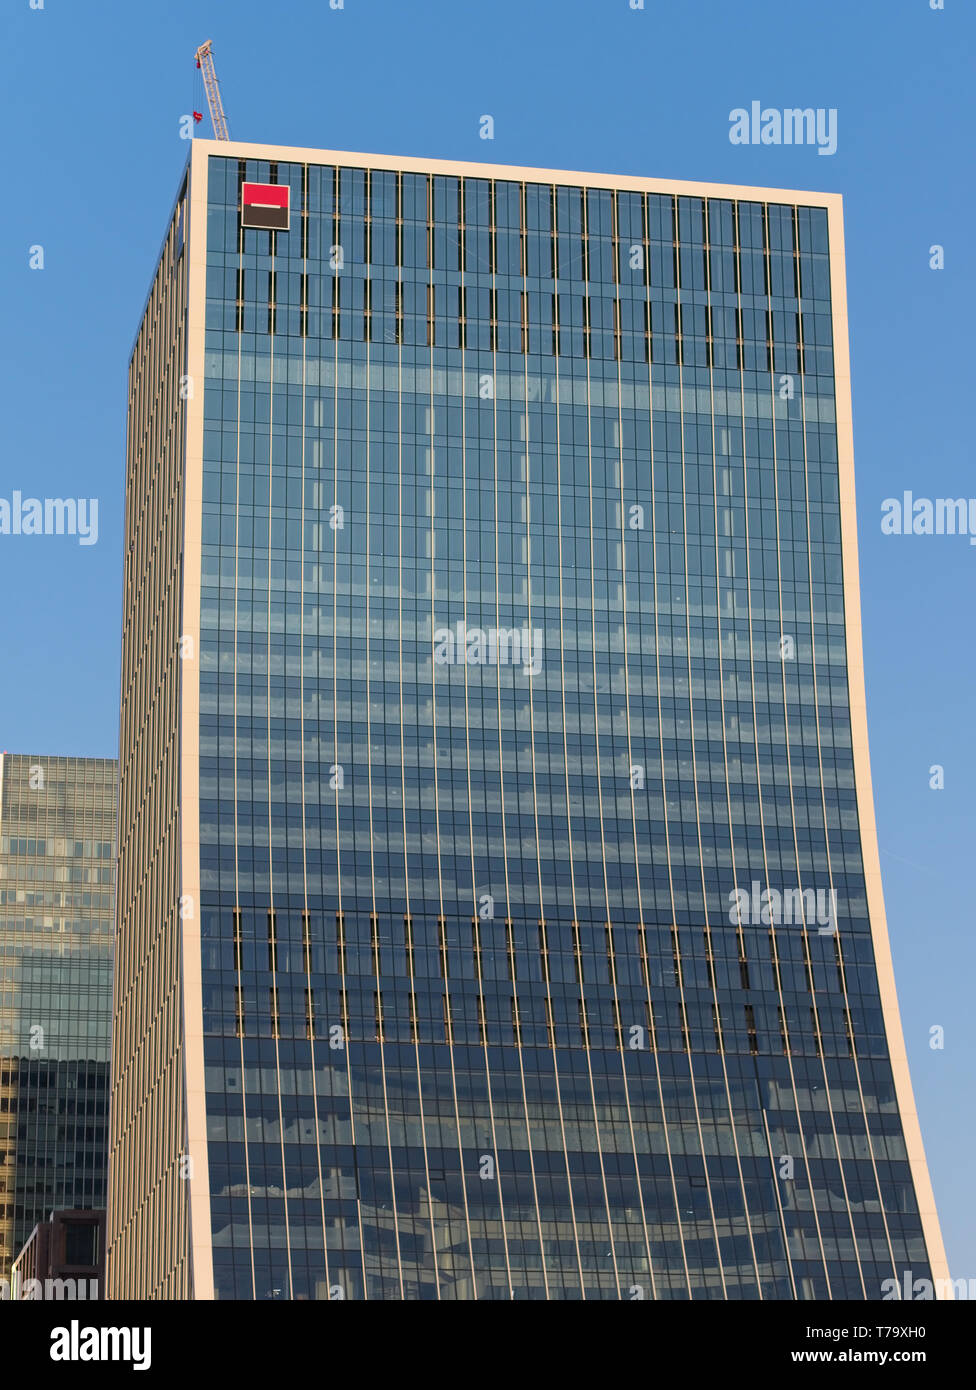 Facade of 5 Bank Street office building, Canary Wharf, London, - Stock Image